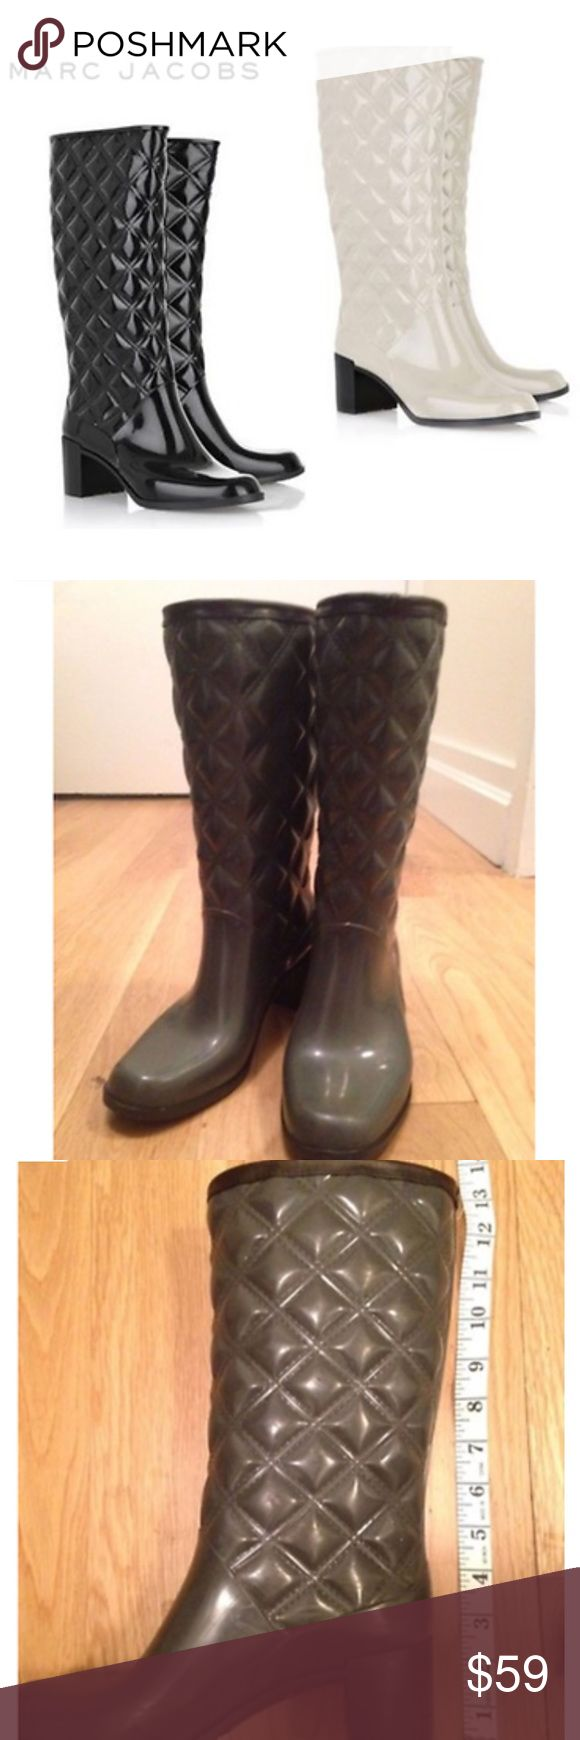 Marc Jacobs Quilted Heeled Wellington Gray Boots 5 Marc Jacobs Quilted Heeled Wellington Rain Boots  Grey  Sz 5, standard 35/5, on the Narrower side  Preowned, with original box, great condition. There's a scratch on the front of one boot. Heels have some wear from walking (see picture)  MSRP $295 Made in Italy  Heel height 2.5'', very slimming, cute and sexy  Amazing sleek quilted design with heel detail, all in all a fabulous and fashionable Wellington boot. Great for keeping you nice and…